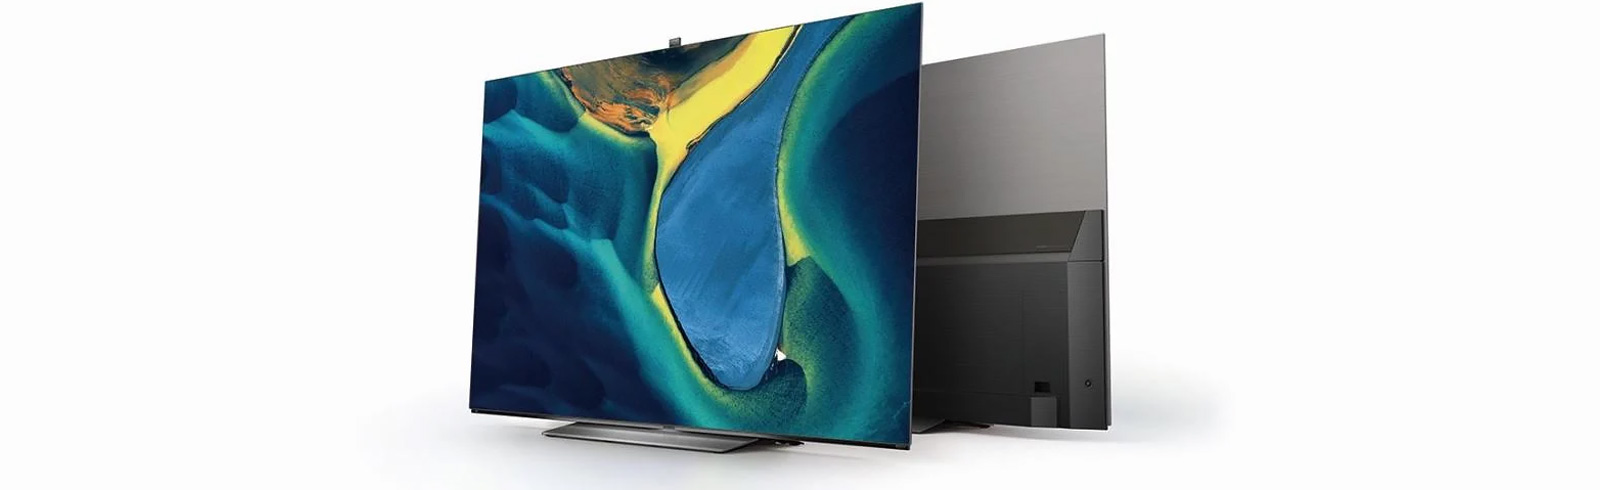 Skyworth S81 Pro OLED TV series with gaming-level specifications goes official in China